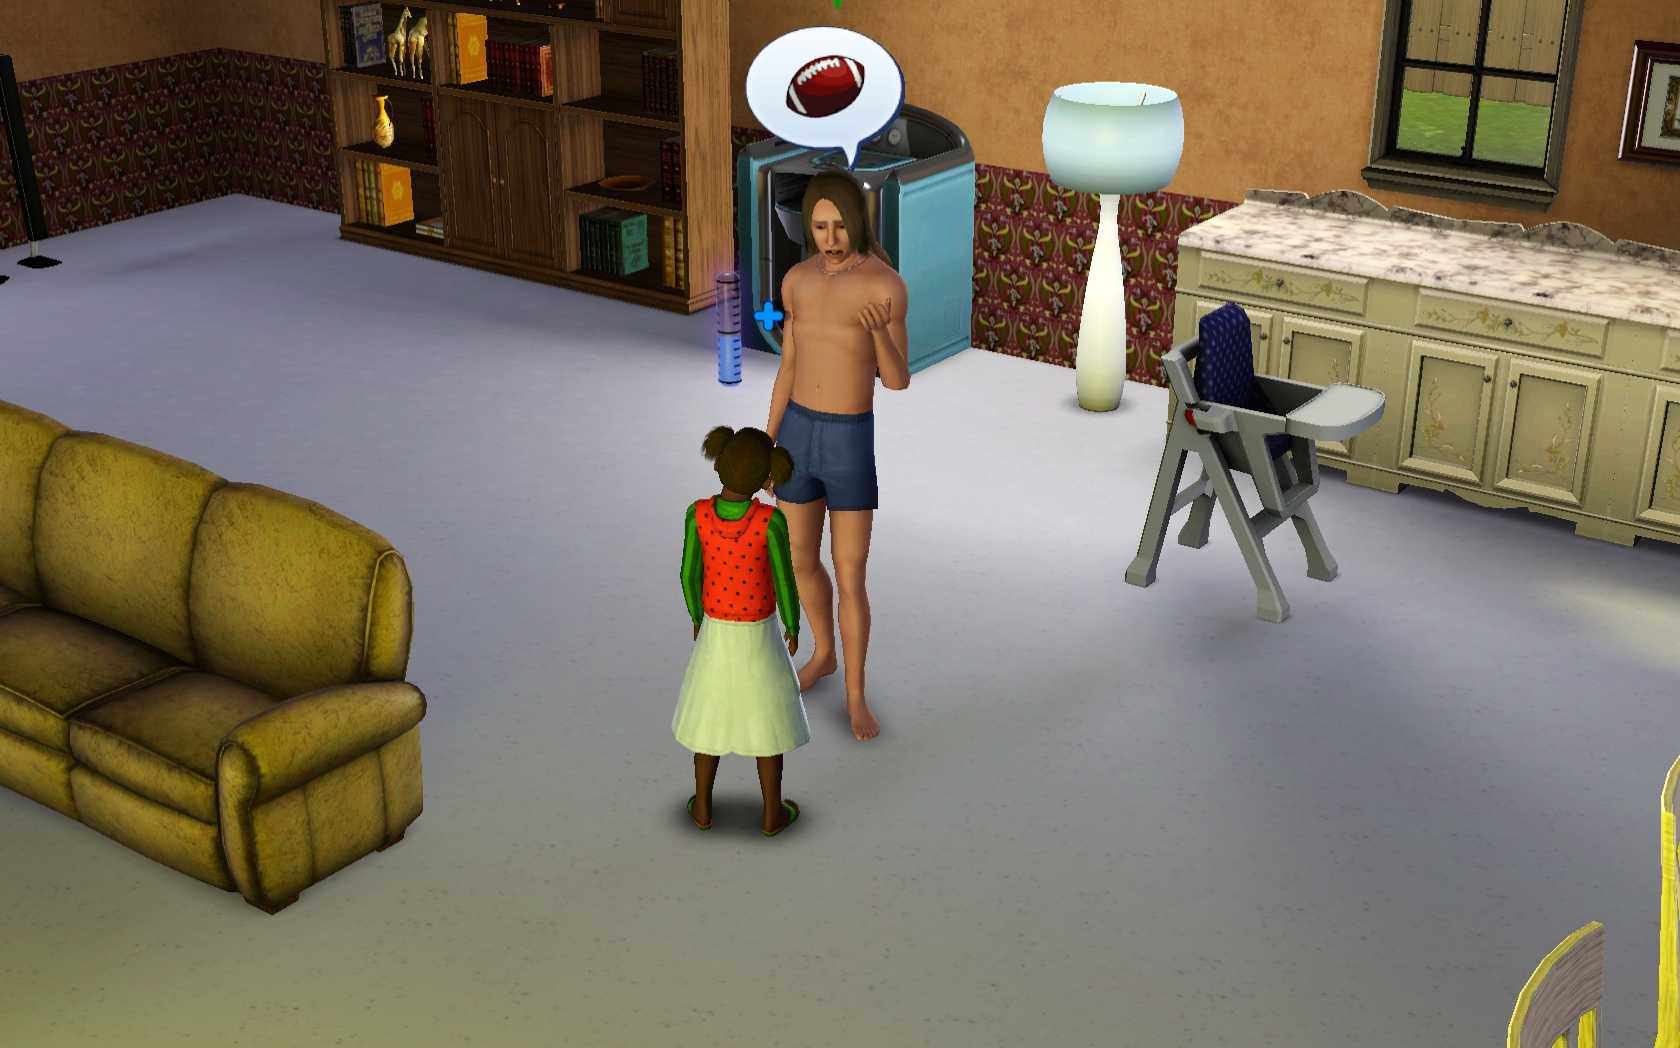 Sims 3 putting child up for adoption 9 11